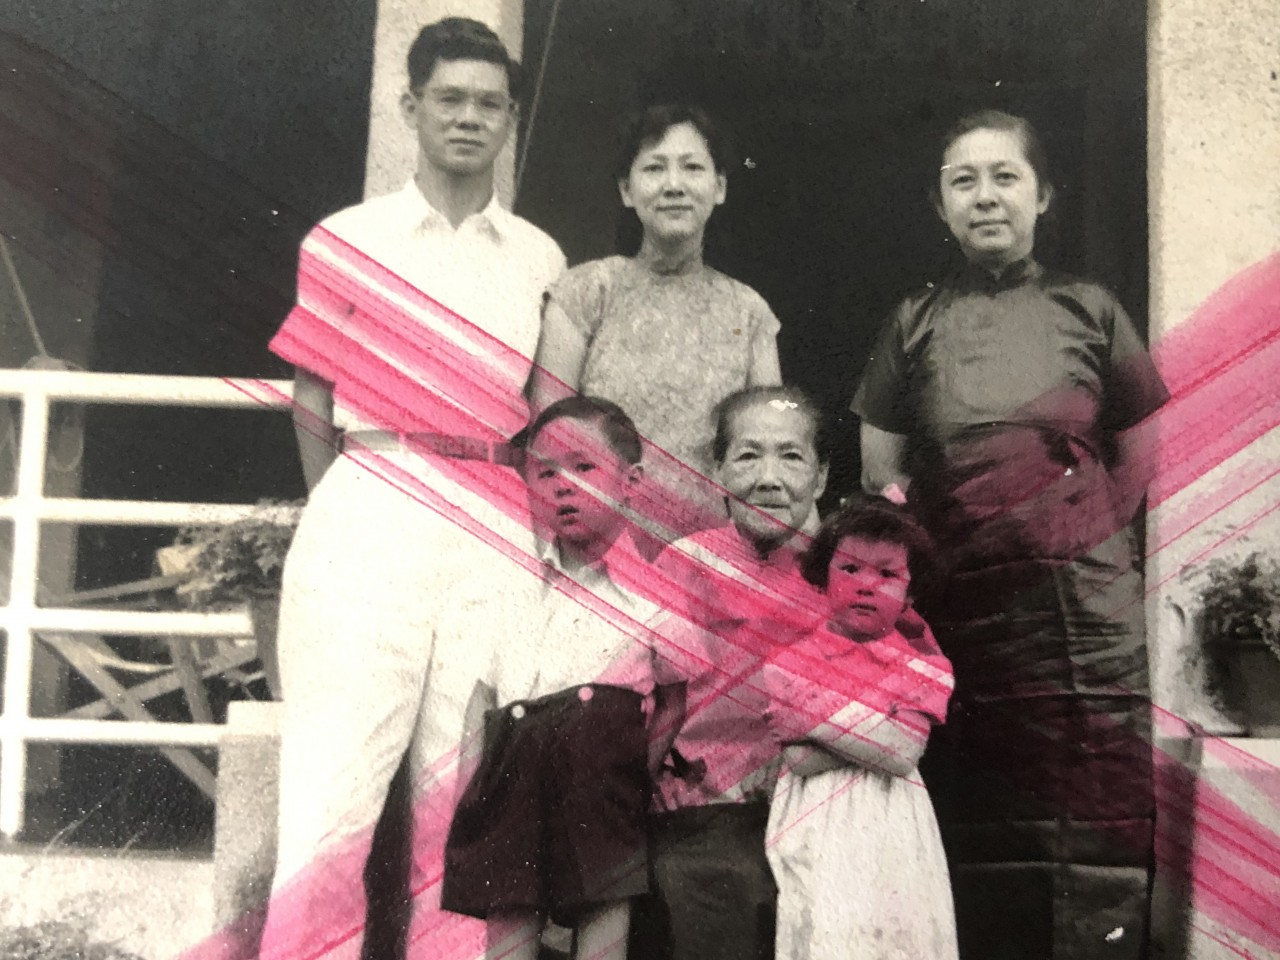 Teo Soon Kim (back row, first from right) visited her sister, Teo Moh Tet (back row, center) in Penang in February 1952.